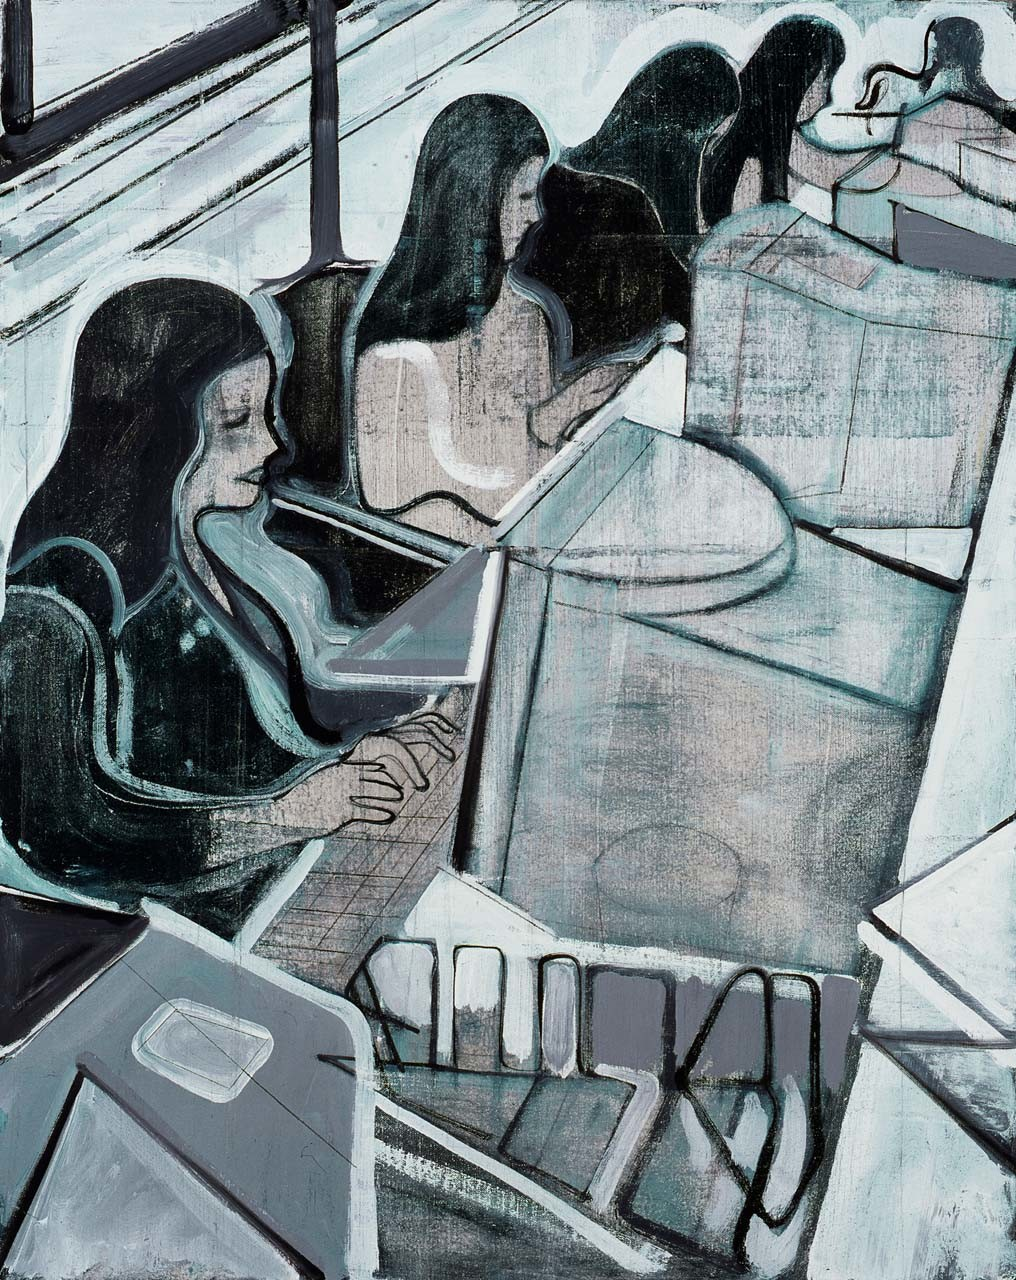 <p>Untitled (women at computers), 2007</p>